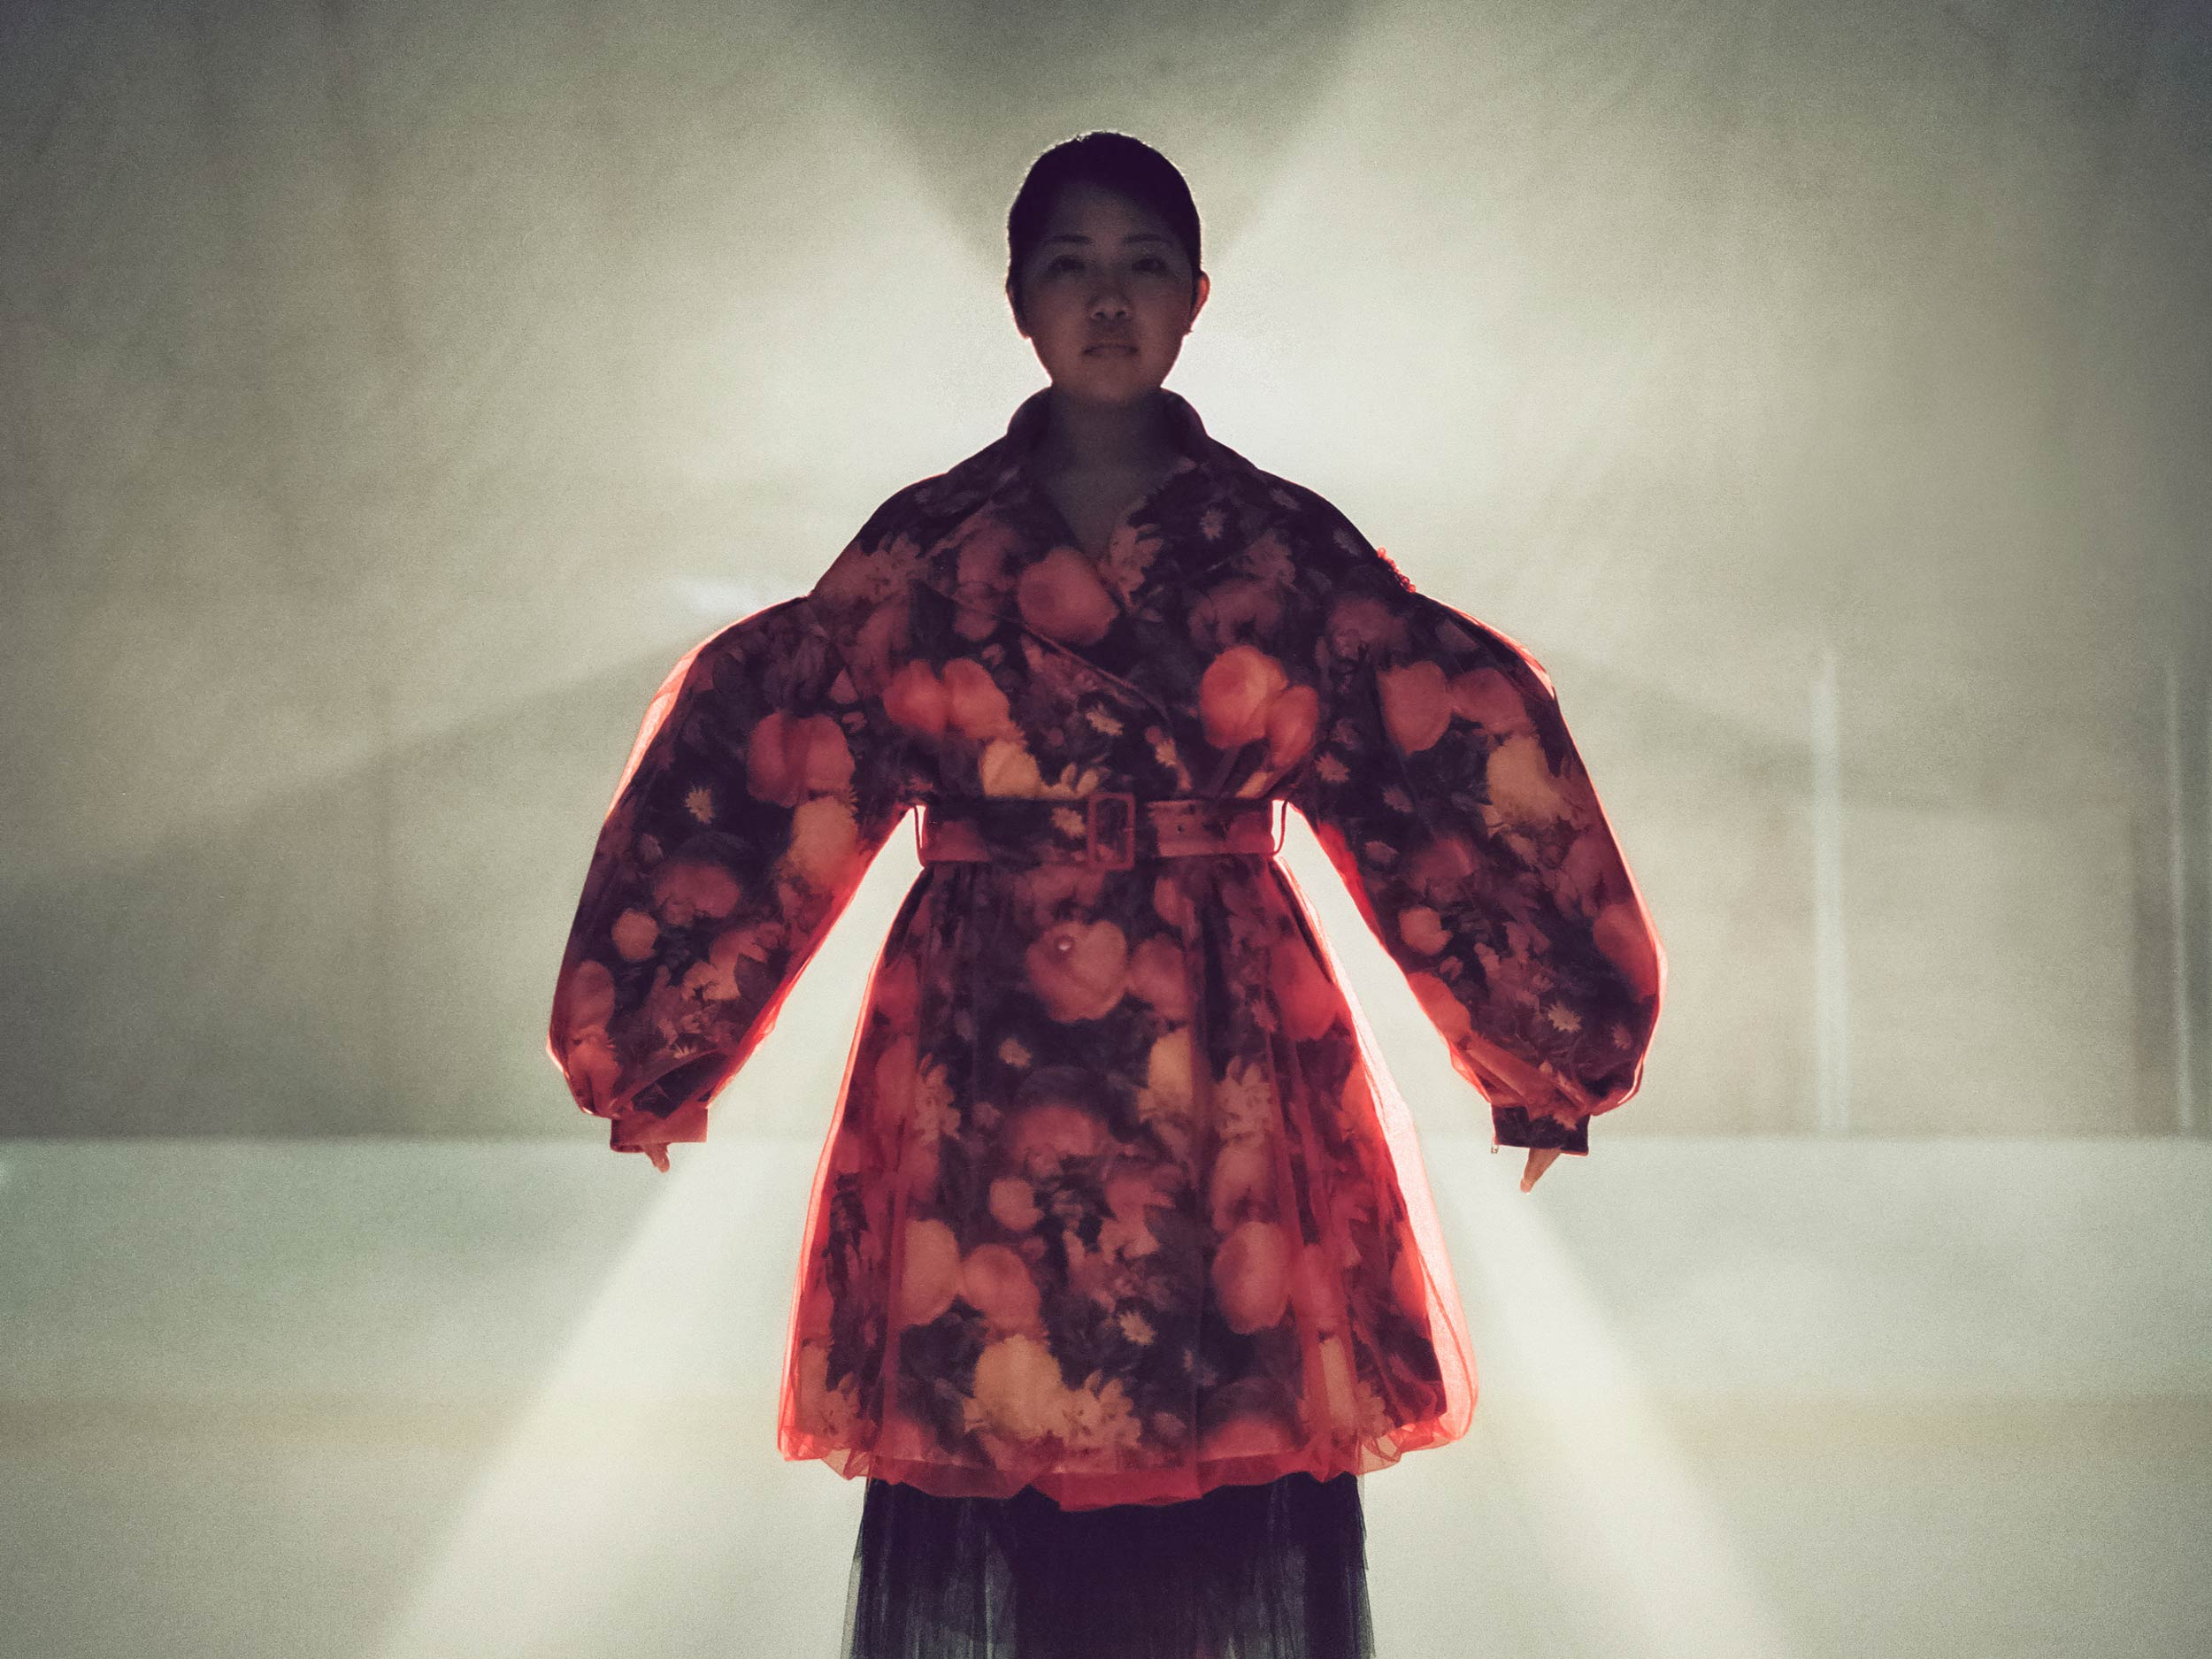 4 Moncler Simone Rocha takes flight